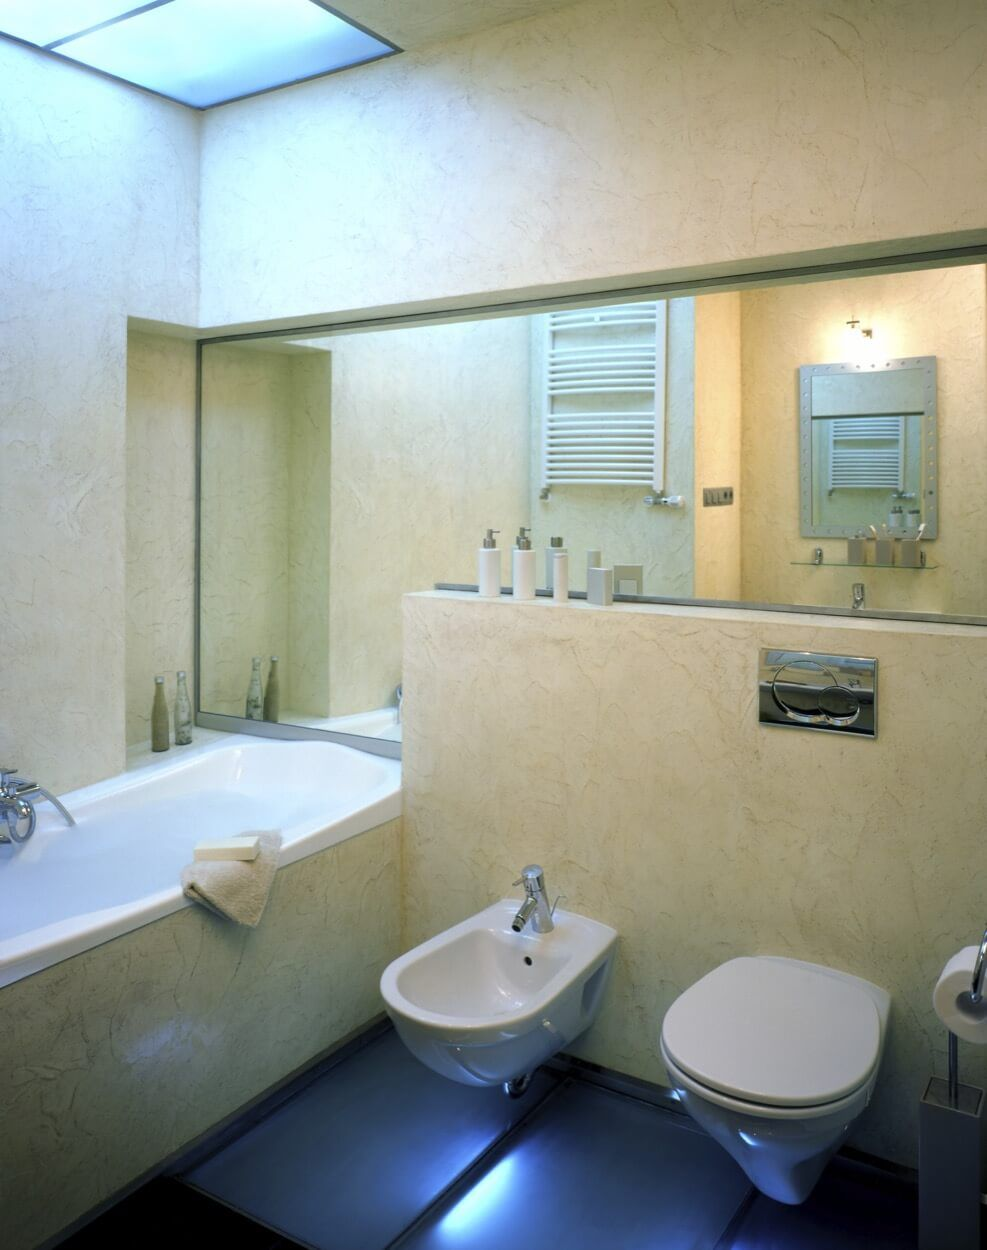 Large Soaking Tub With Wall Mounted Bidet And Toilet | Kitchen, Bath ...